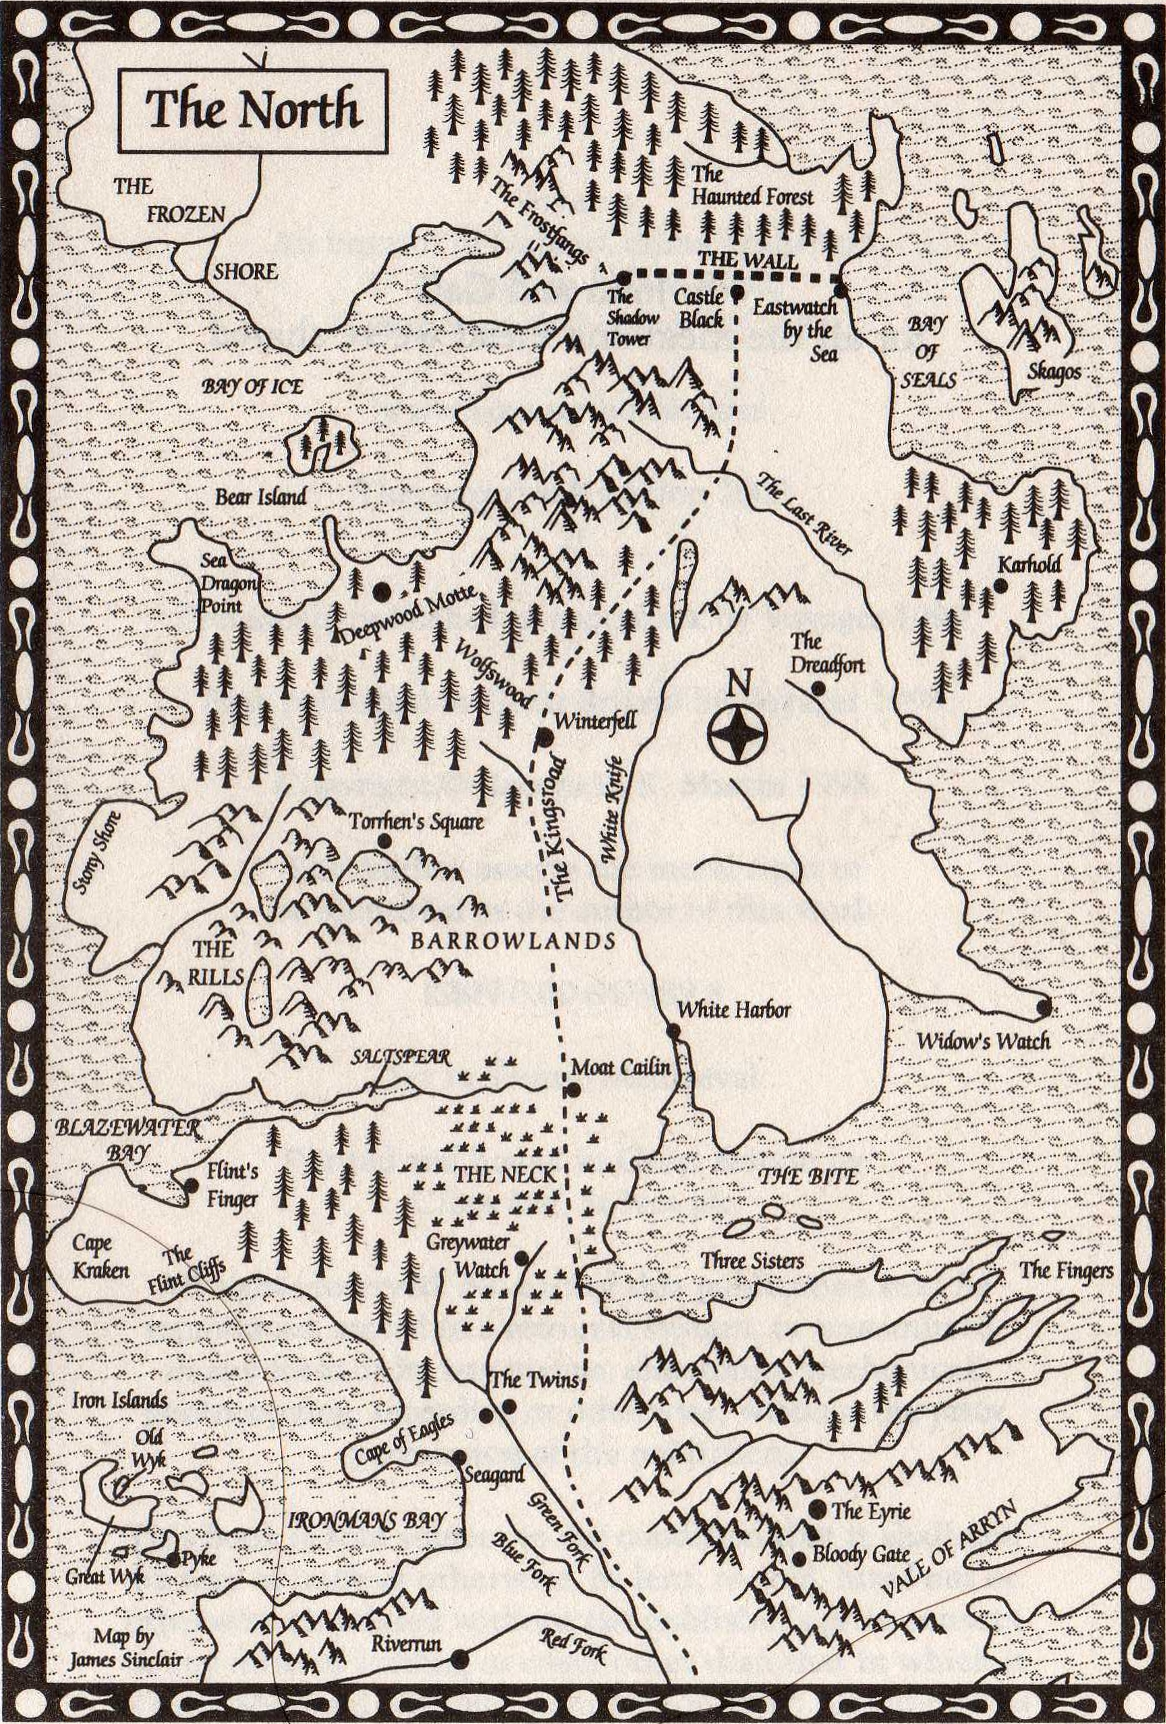 Winter is Coming | doubtfulsea on walking dead map, king of thrones map, world map, the game book map, harry potter book map, outlander book map, under the dome book map, king of thorns map, gameof thrones map, the mysterious island book map, wentworth prison scotland map, dothraki sea map,